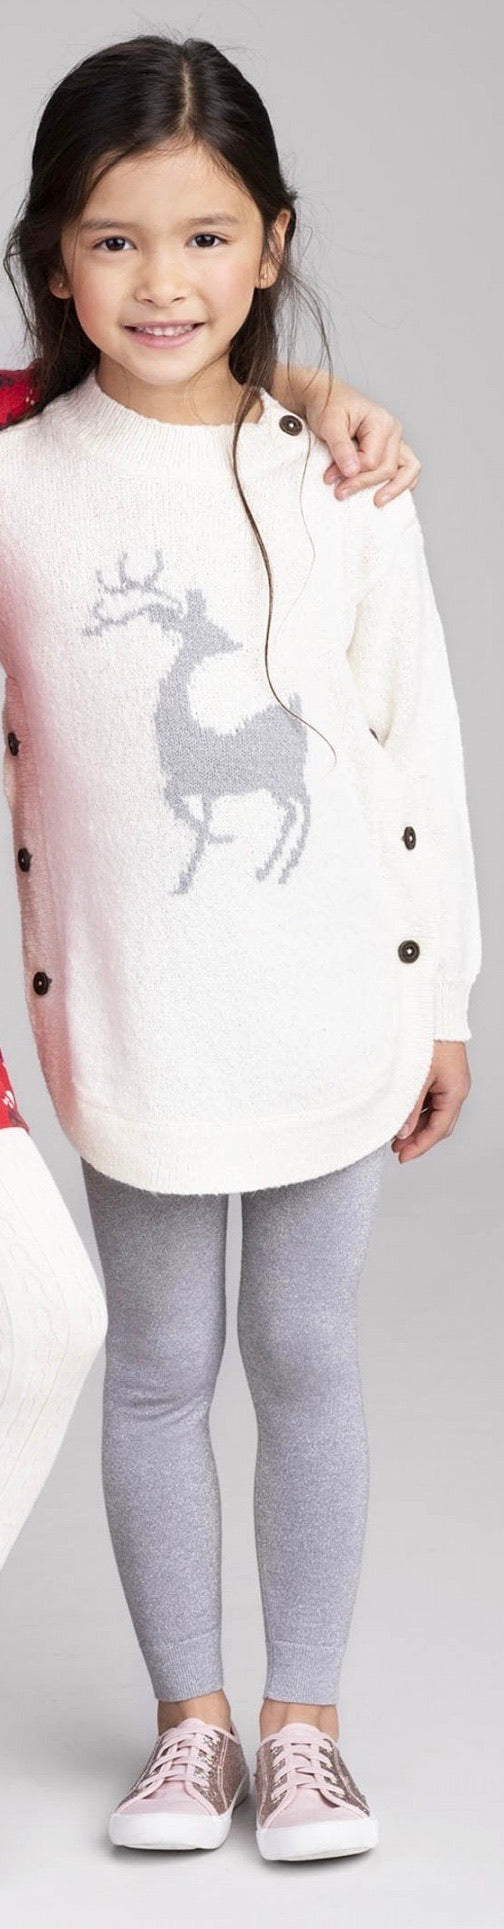 Mistletoe Deer Sweater